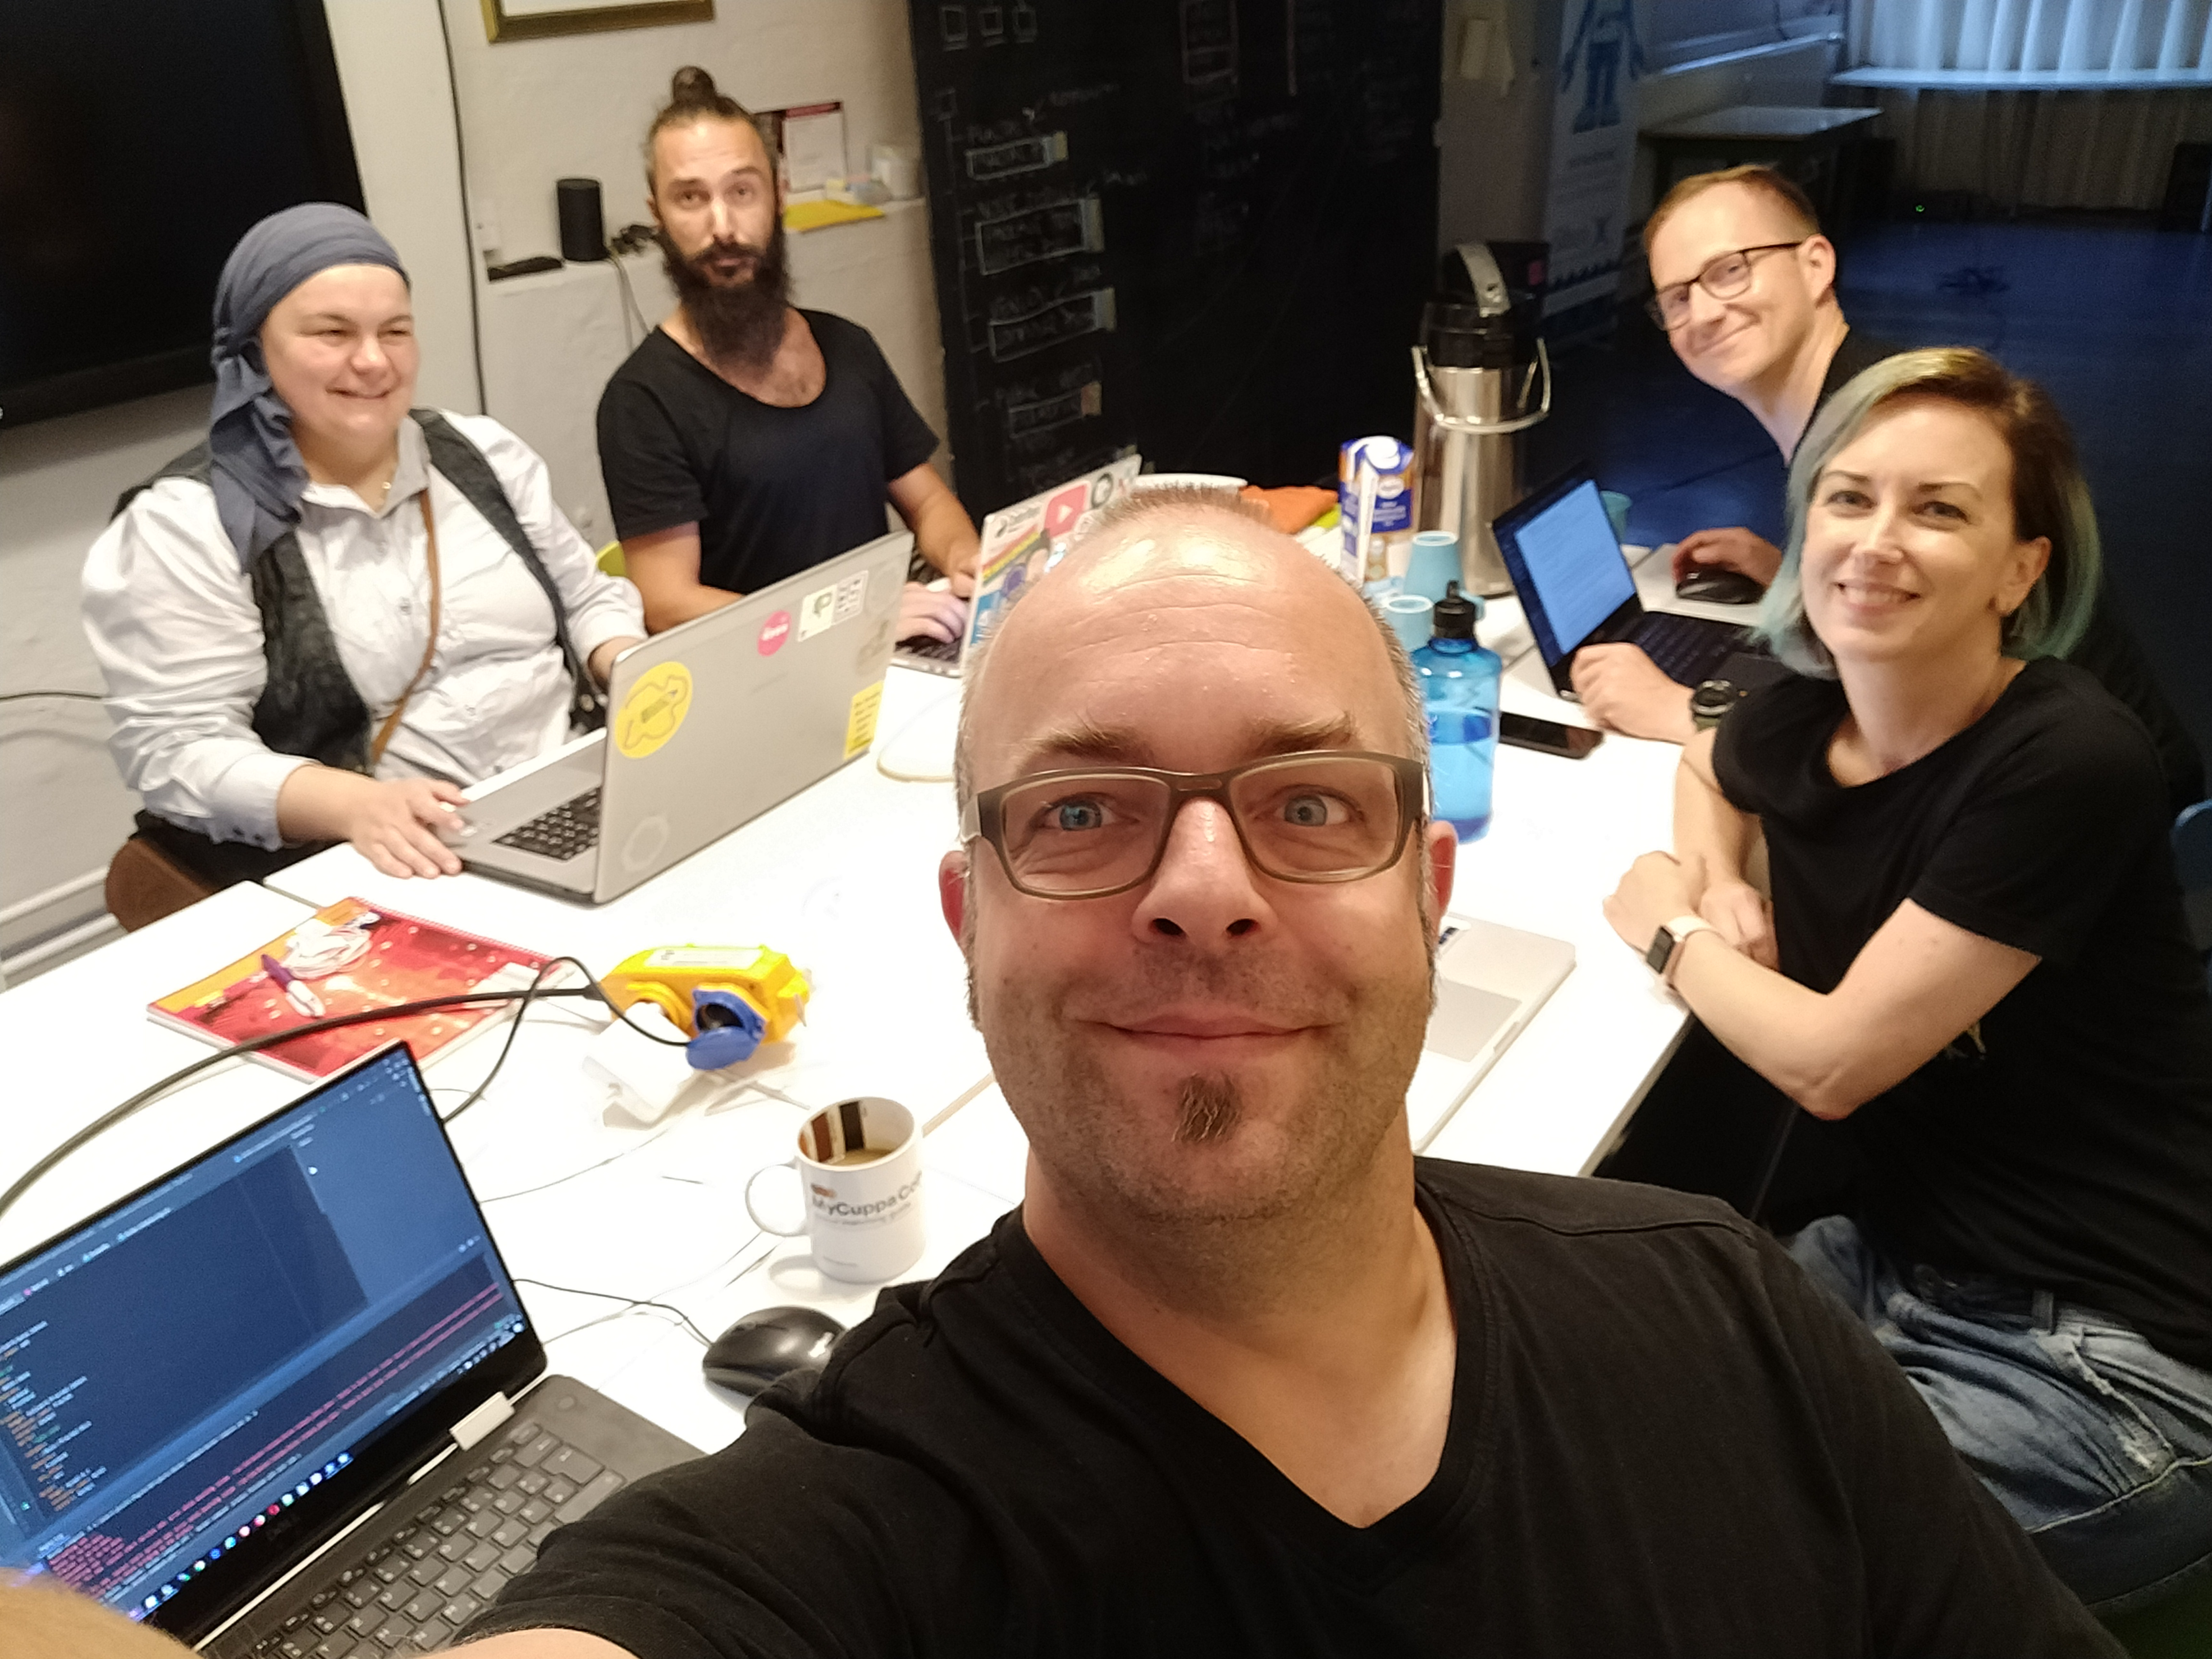 Saskia, Alex, Björn, Susi and Joschi at the Homebrew Website Club Nuremberg 2019-08-07